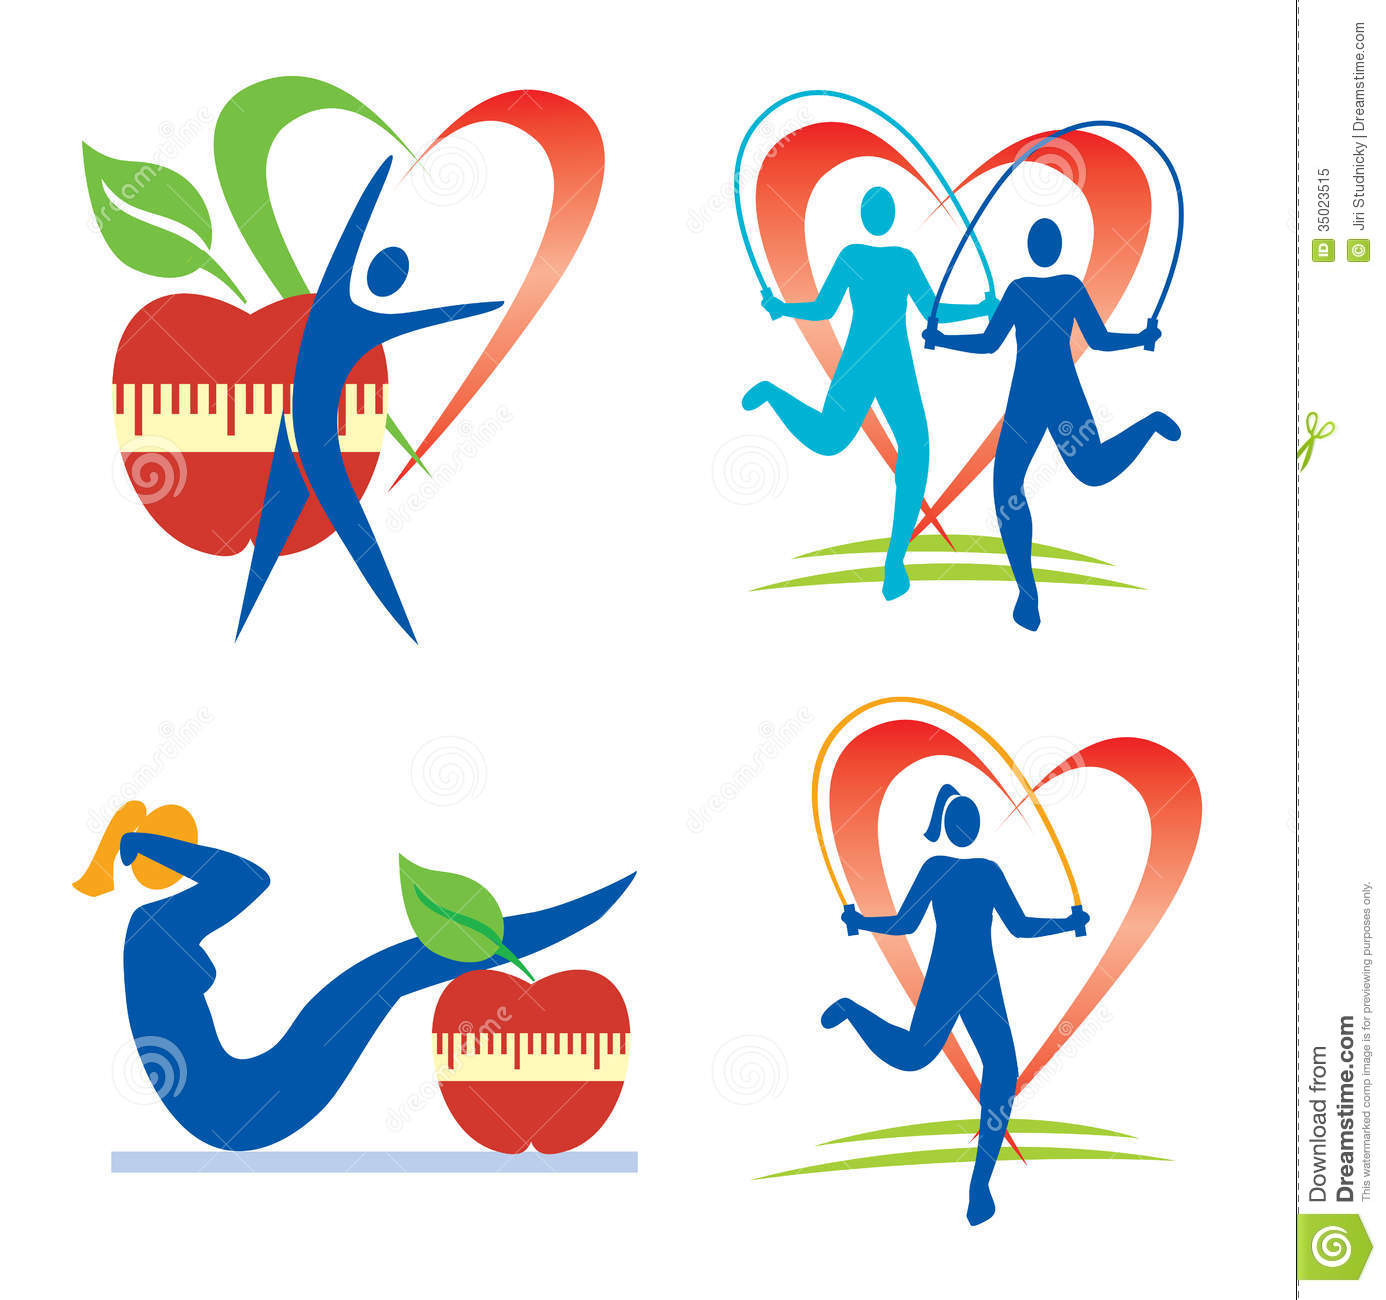 Health Fitness Symbols Stock Photos, Images, & Pictures - 945 Images